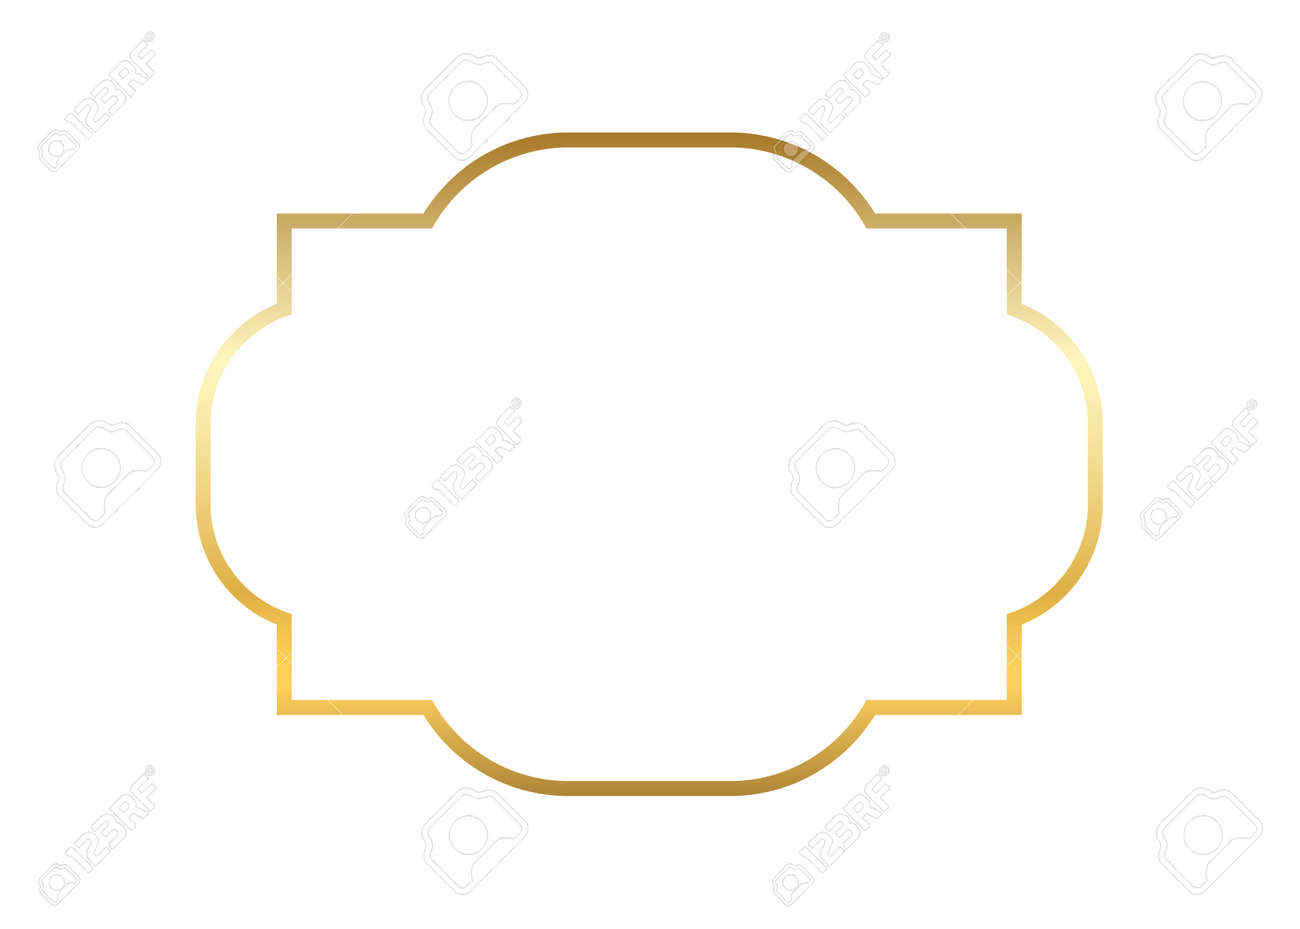 Gold And Beautiful Simple Golden Frame Design Vintage Style Decorative Border Isolated White Background With